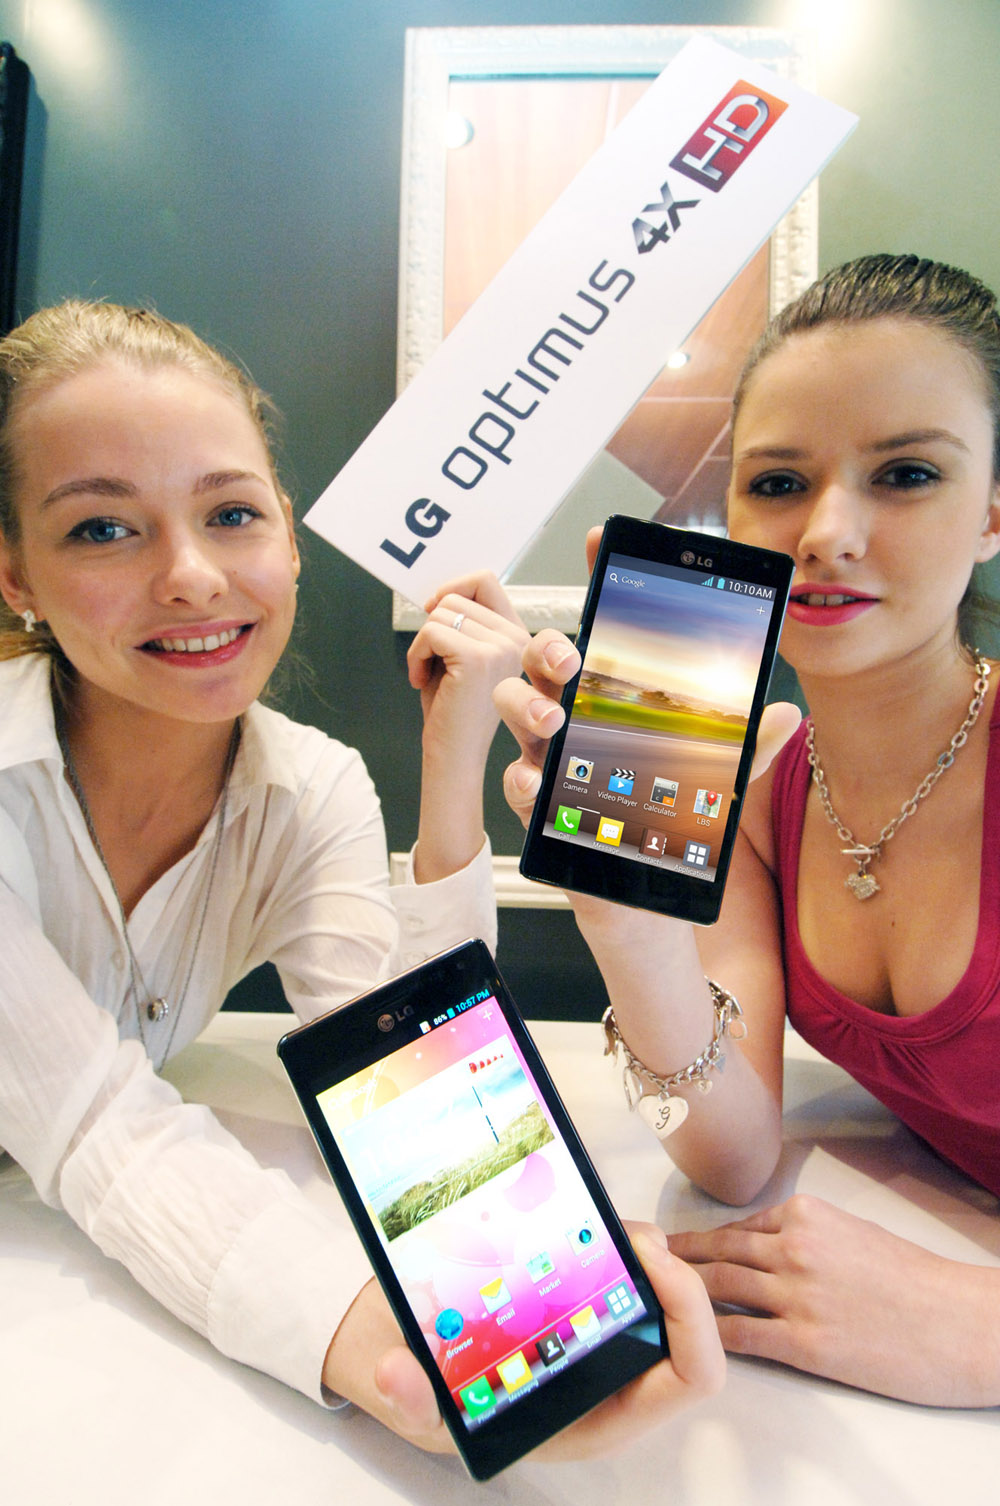 Two models holding up two LG QUAD-CORE smartphones and a promotional panel engraved with the brand name LG OPTMUS 4X HD